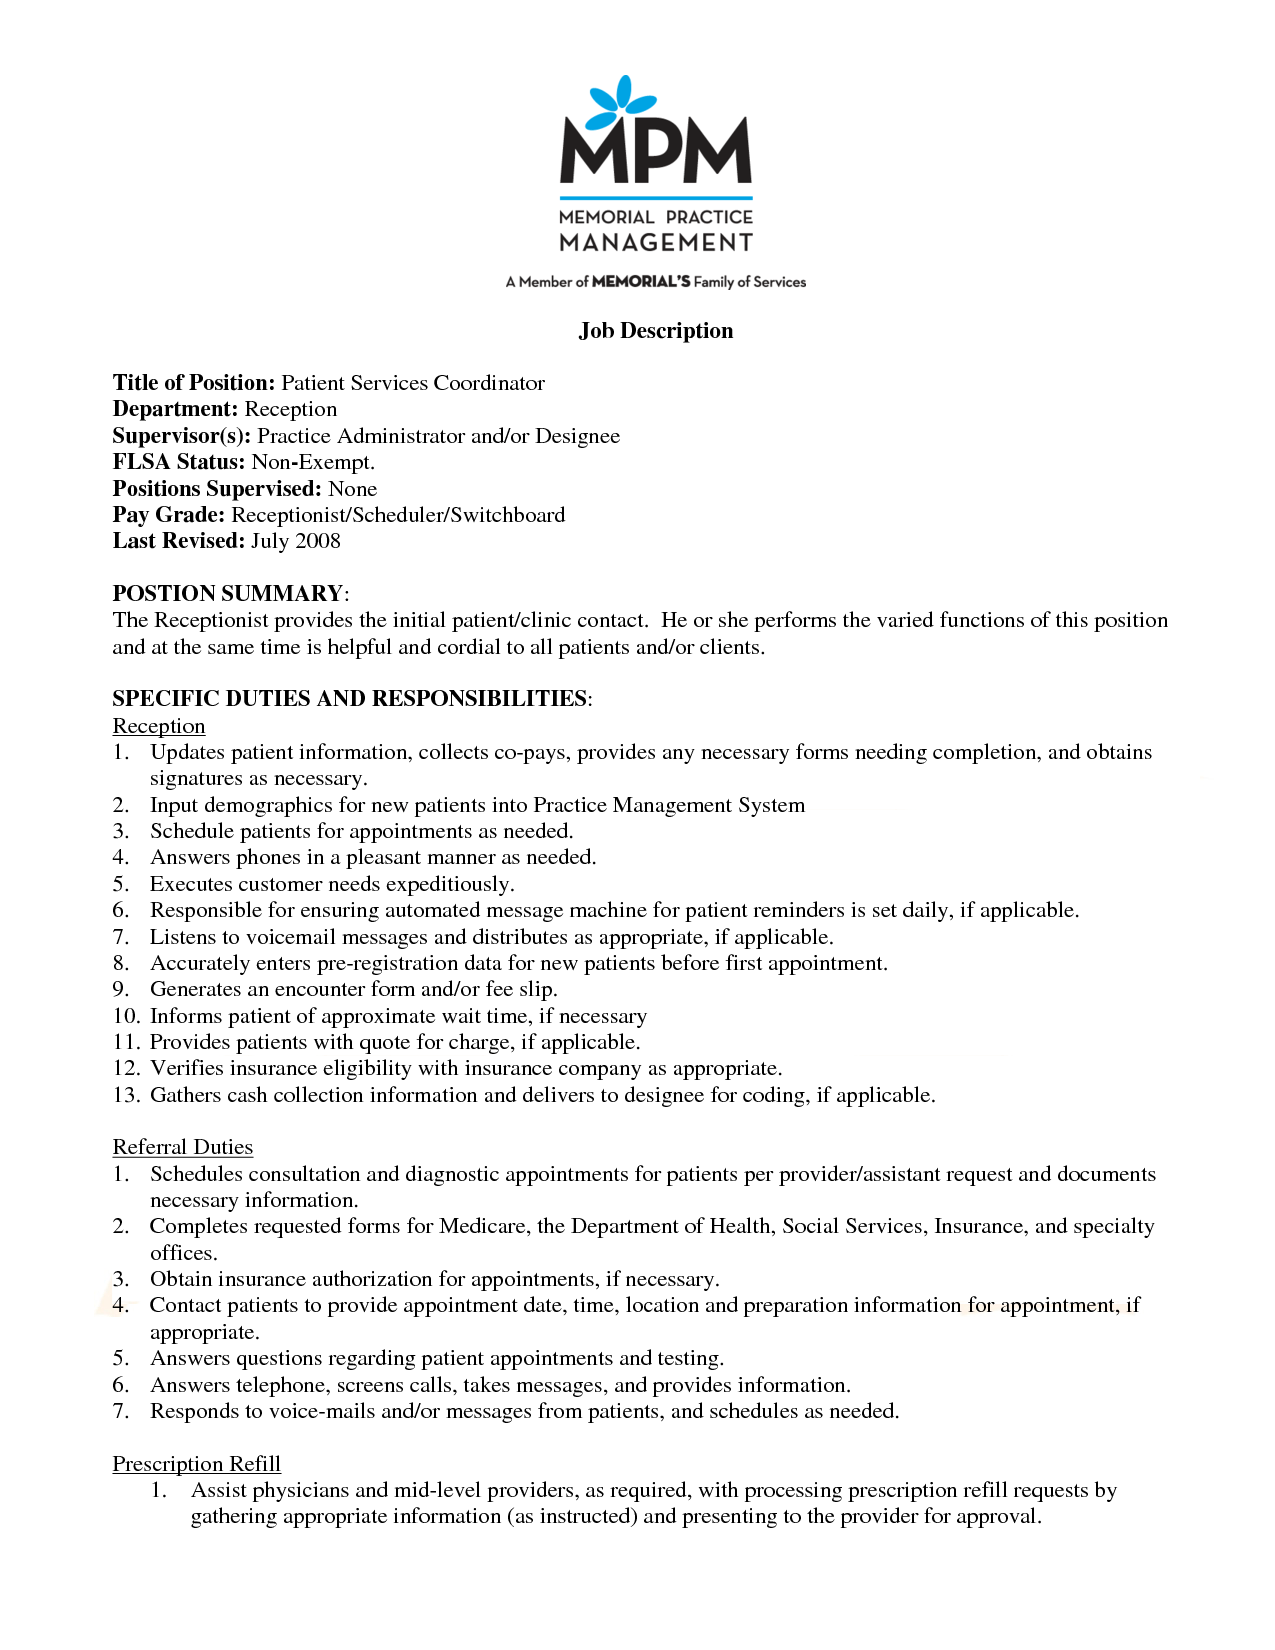 Perfect Wellness Coordinator Cover Letter With Additional Free Download